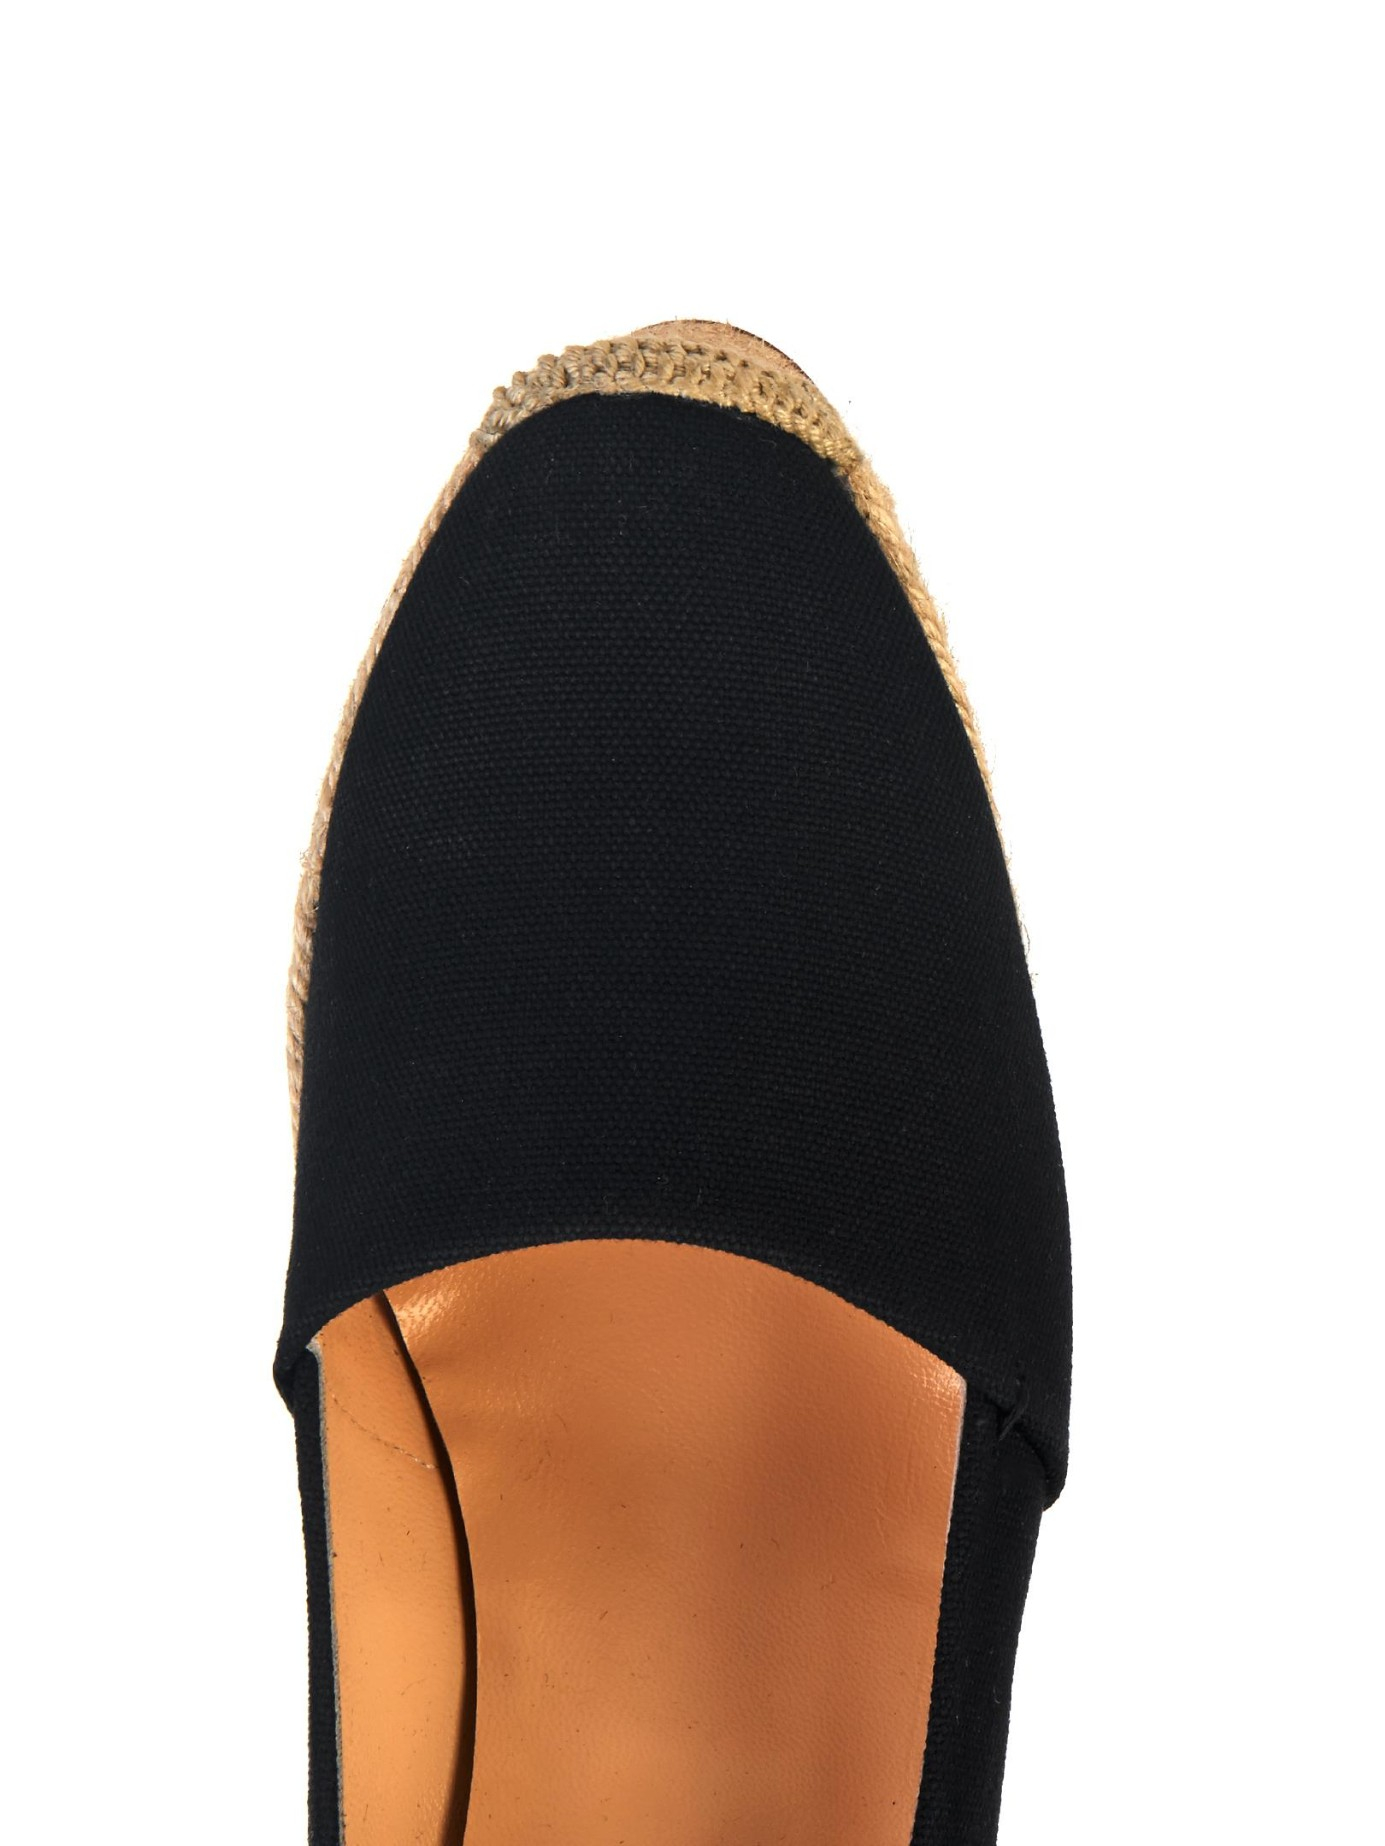 cheap replica christian louboutin men shoes - christian louboutin round-toe espadrille wedges Black canvas | The ...